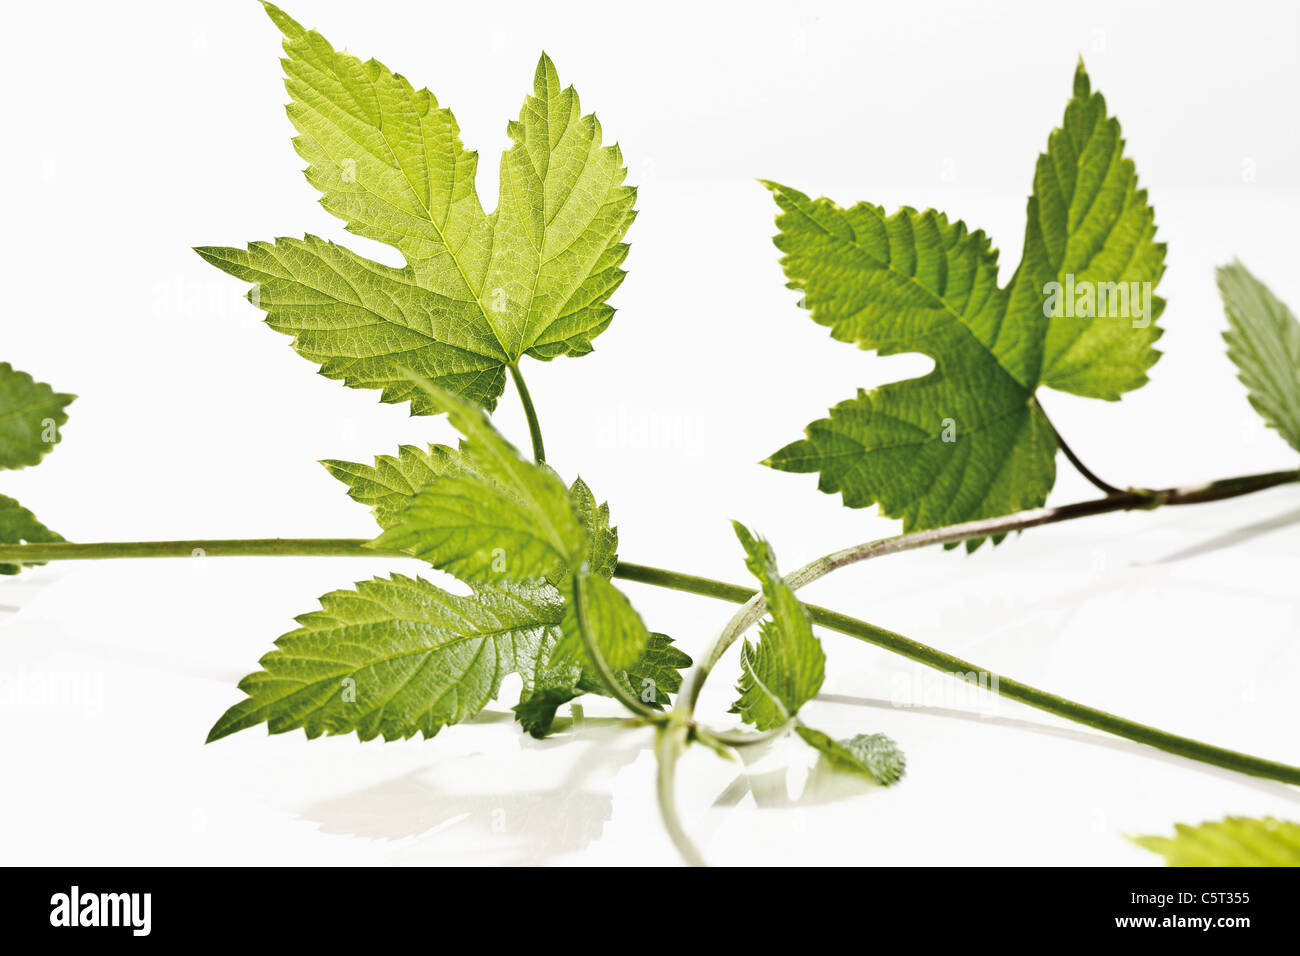 Hop tendril, close-up - Stock Image